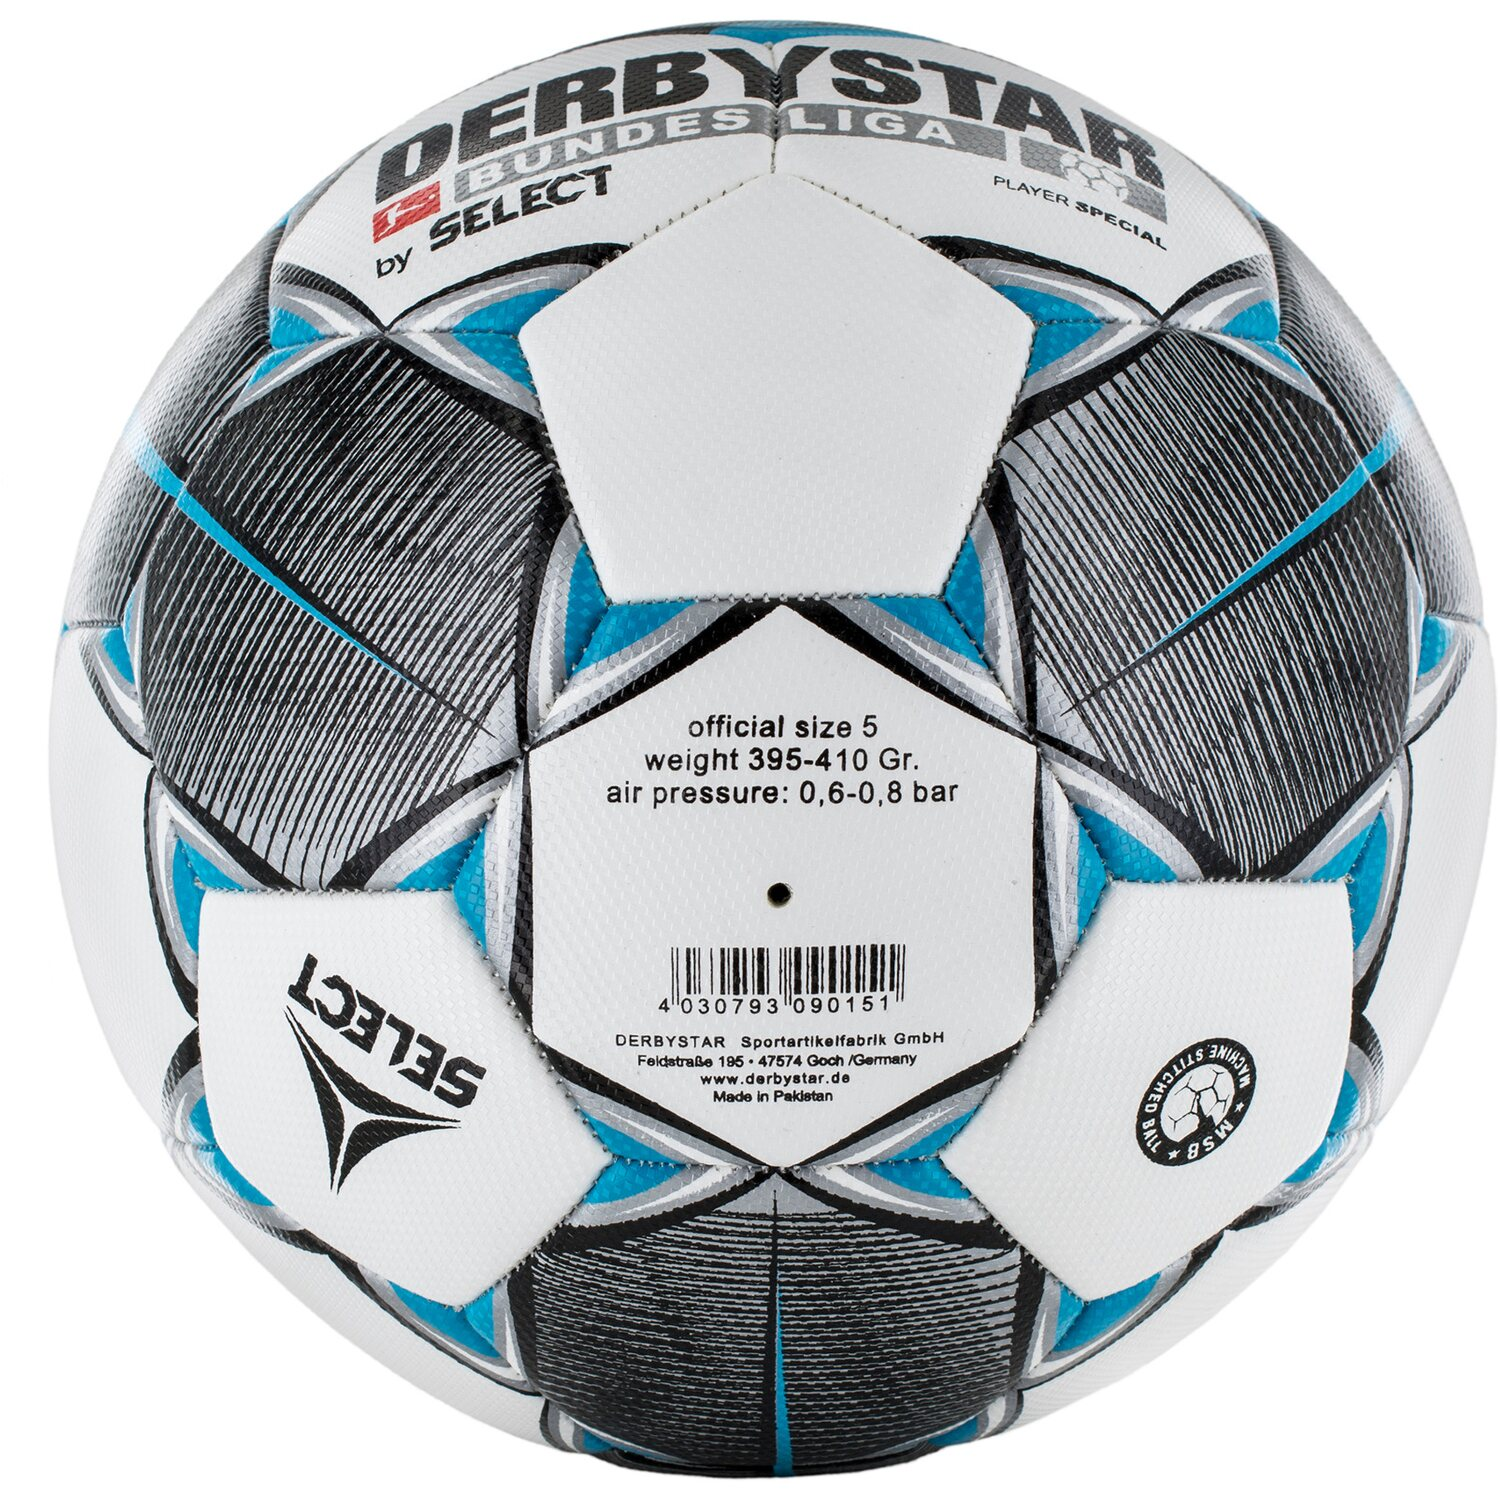 Derbystar Fussball Bundesliga Player Special Saison 2019 20